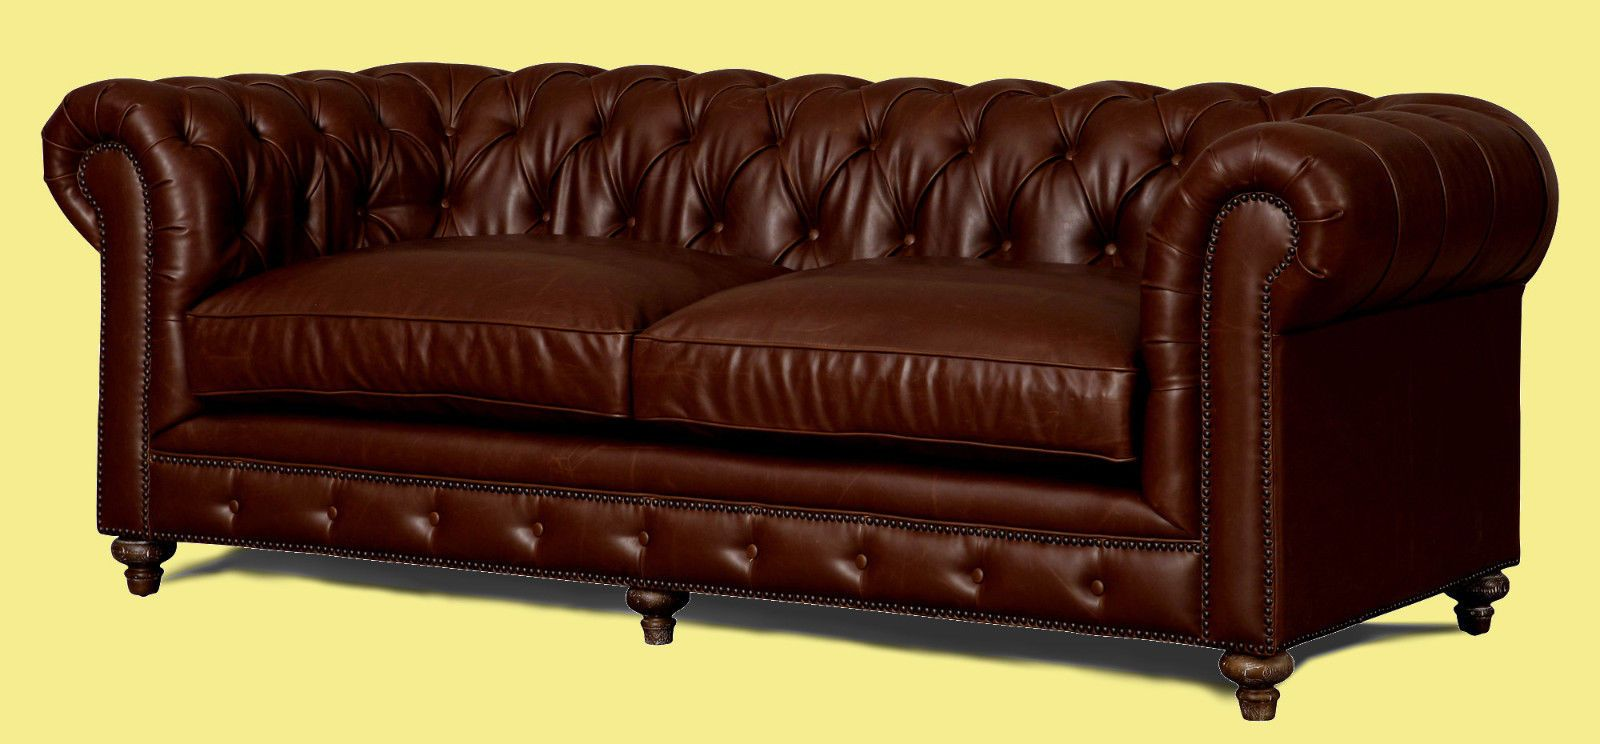 Brown Leather Chesterfield Sofa This Sofa Is Upholstered In Rich